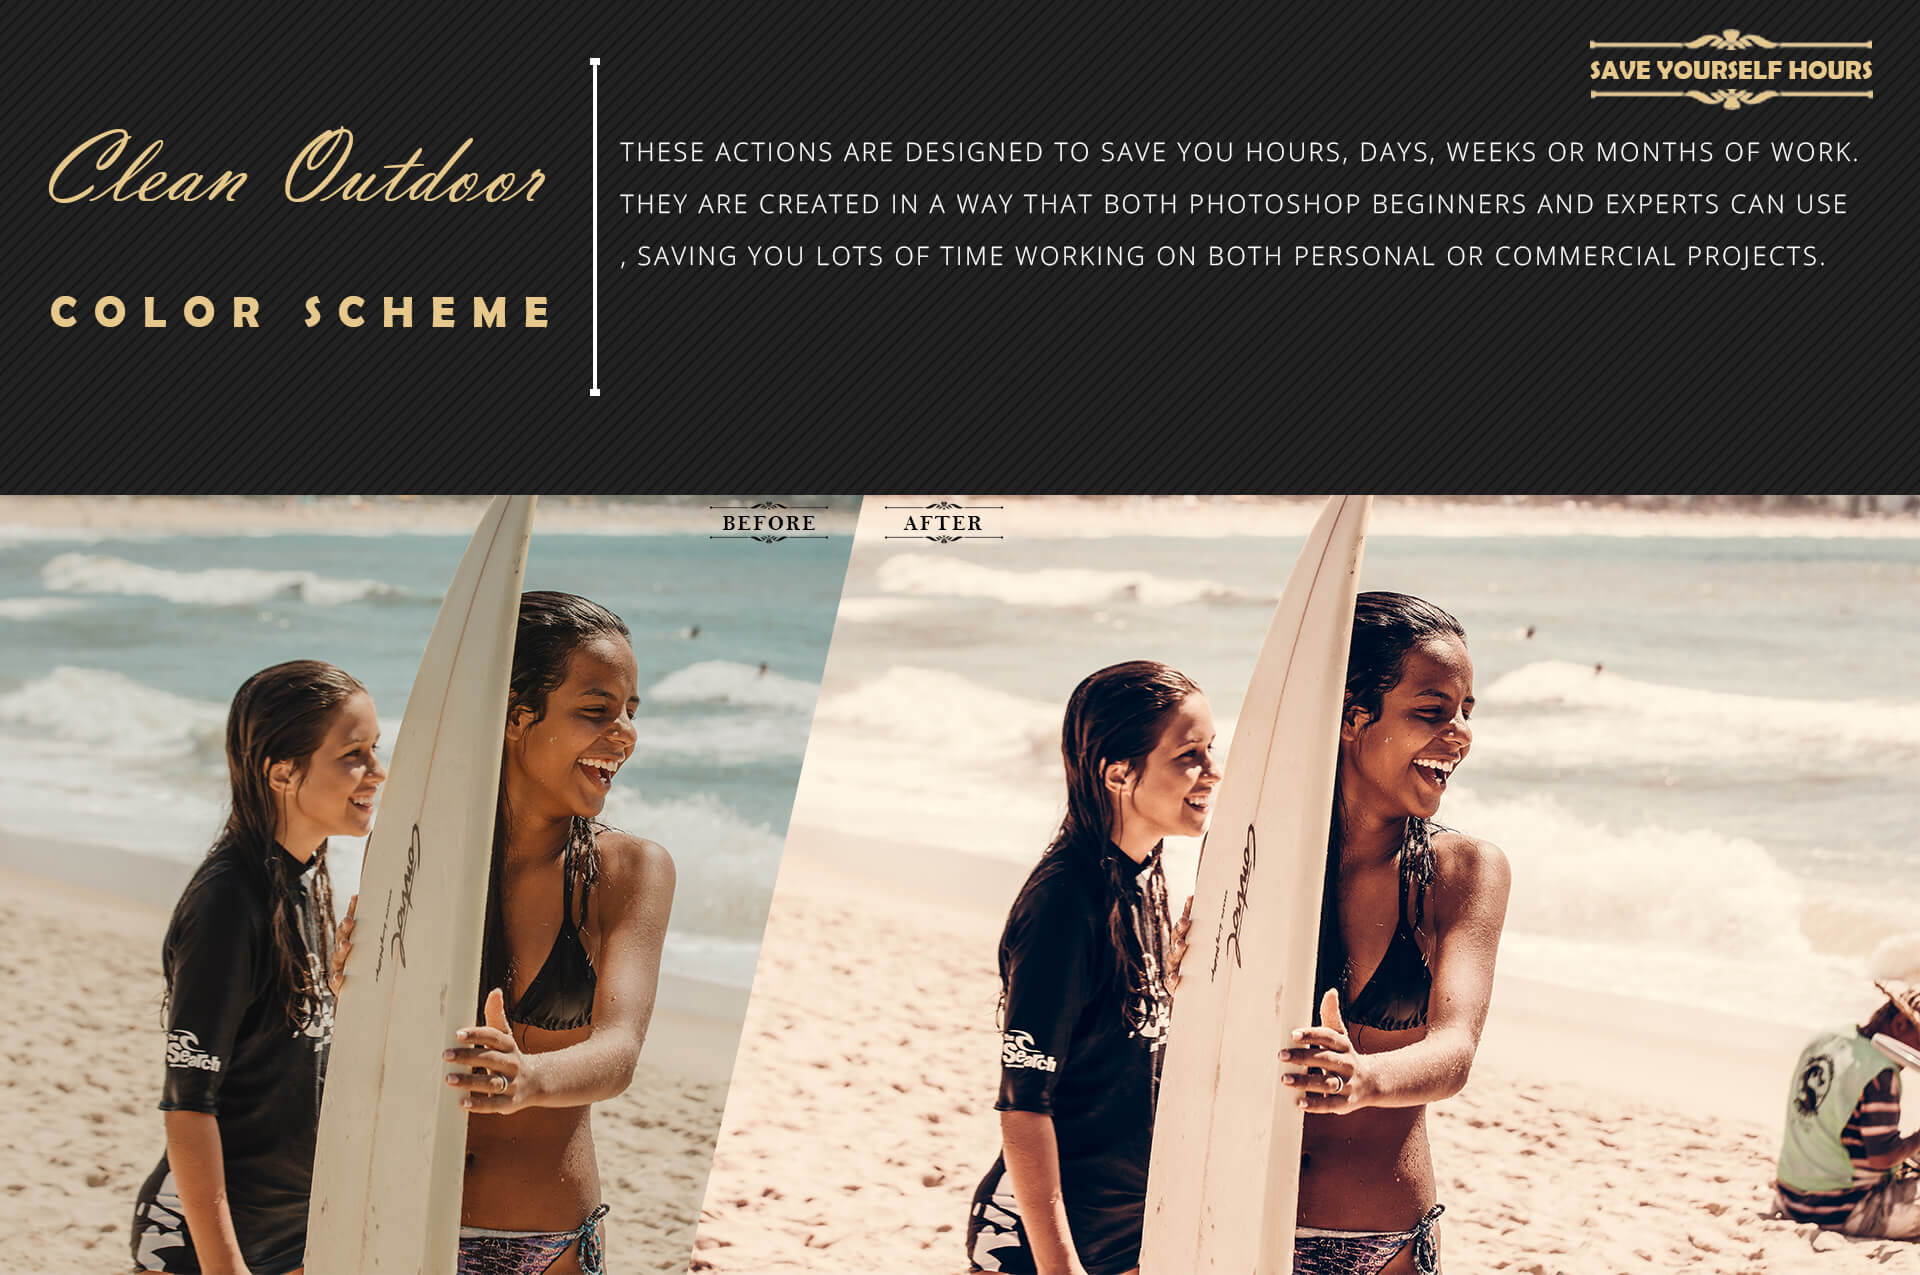 Neo Clean Outdoor Color grading Photoshop Actions example image 7